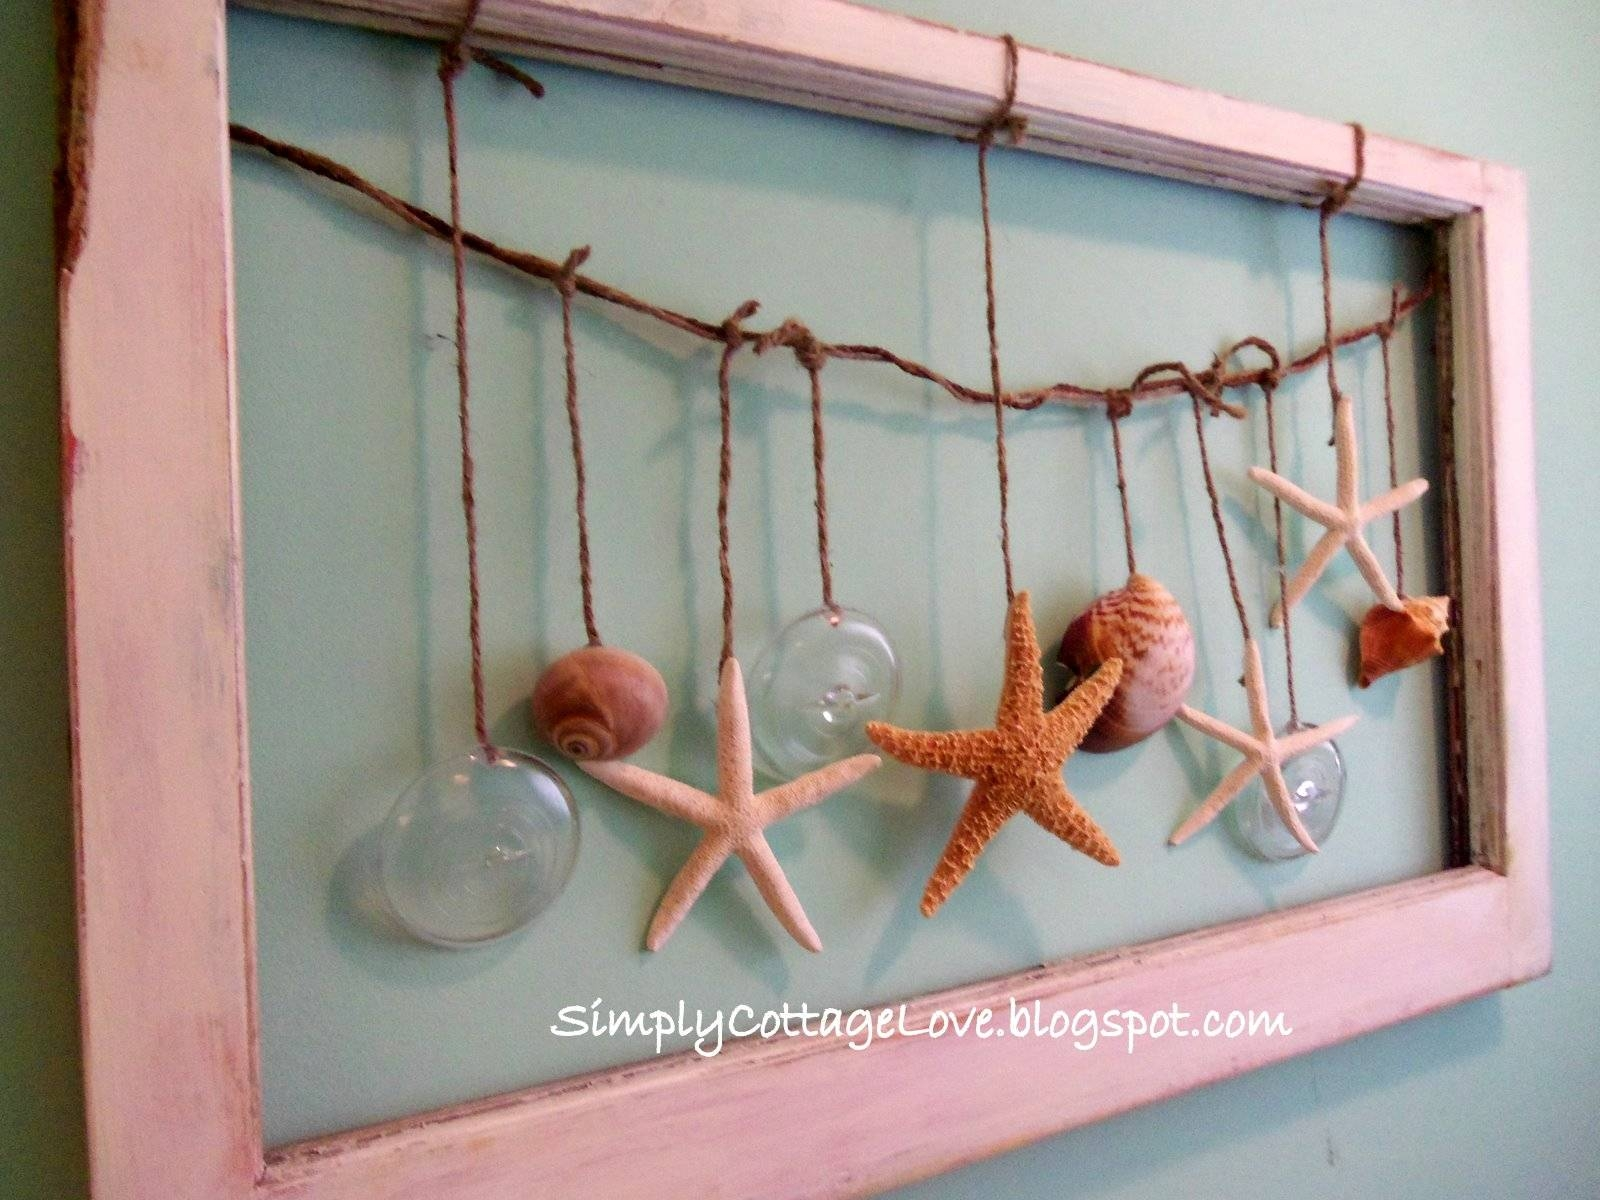 Simply Cottage Love: Beachy Wall Art Pertaining To Most Up To Date Beach Cottage Wall Art (View 20 of 25)